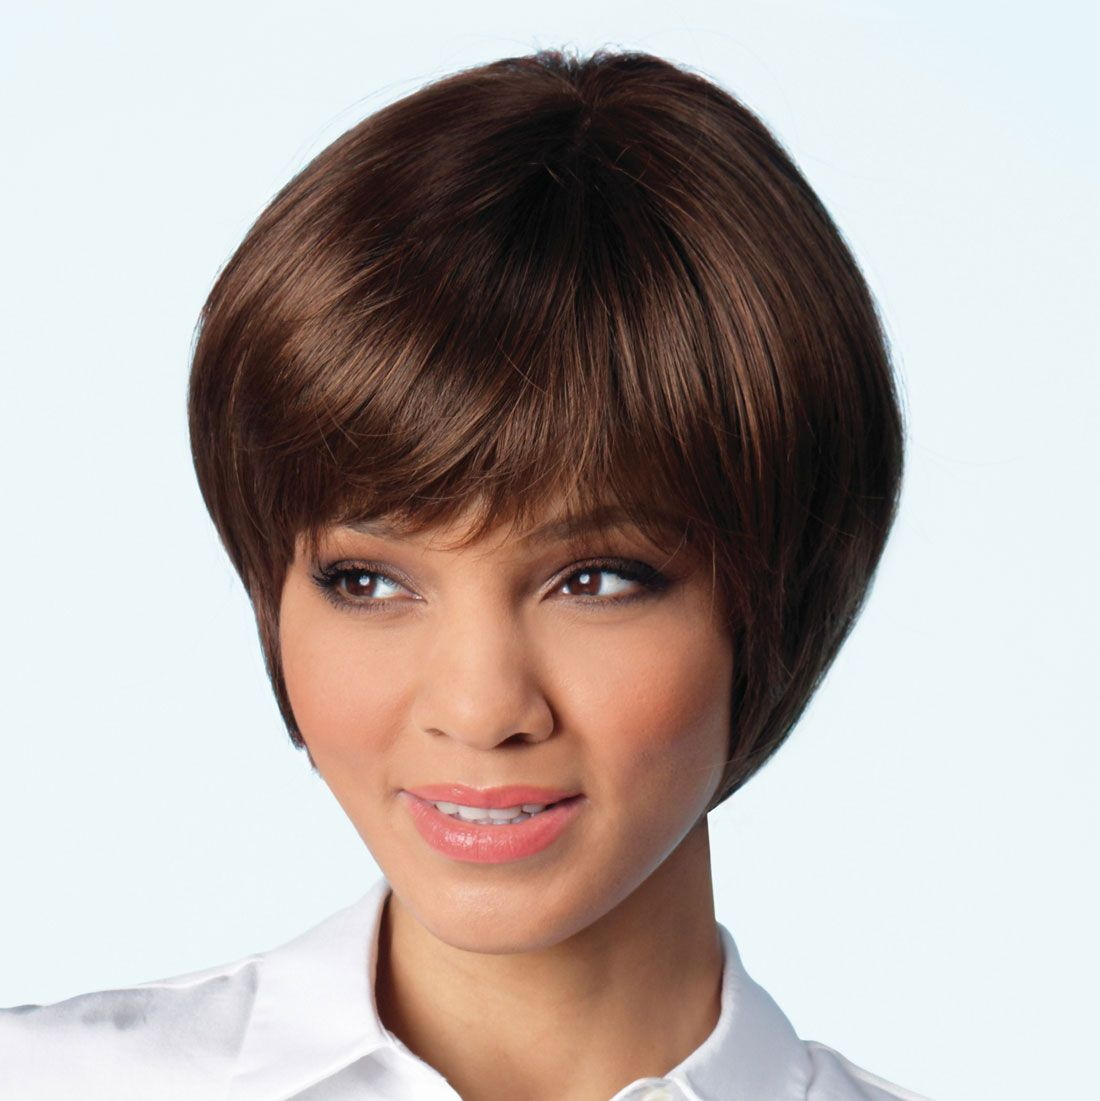 Dylan Wig - Amore Collection